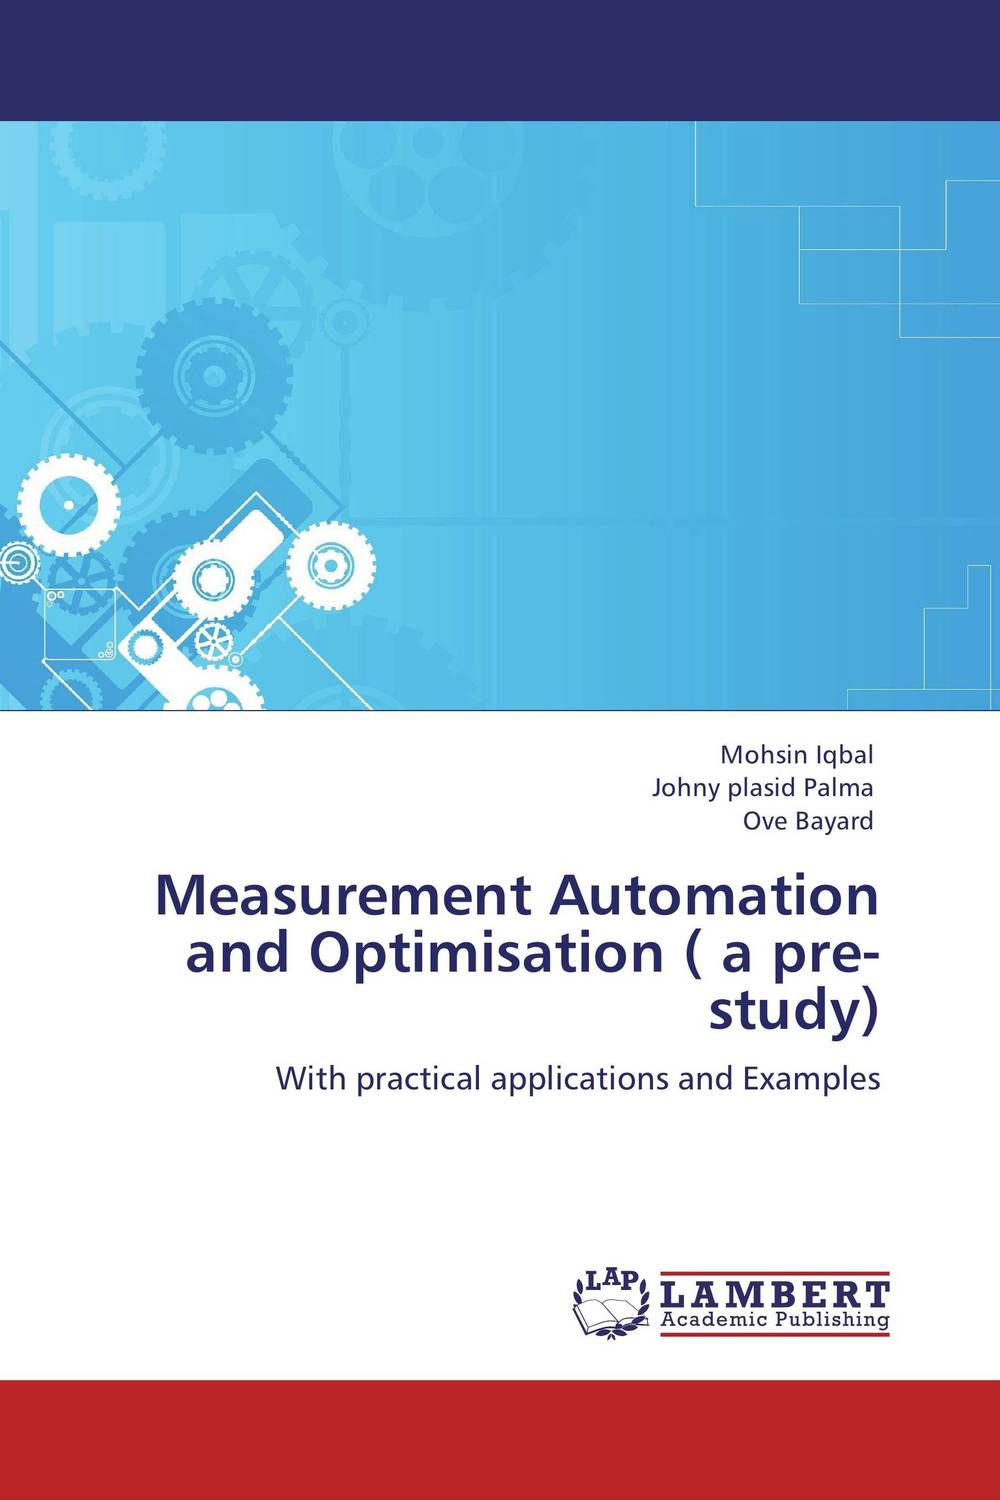 Measurement Automation and Optimisation ( a pre-study) medicine manufacturing industry automation using microcontroller